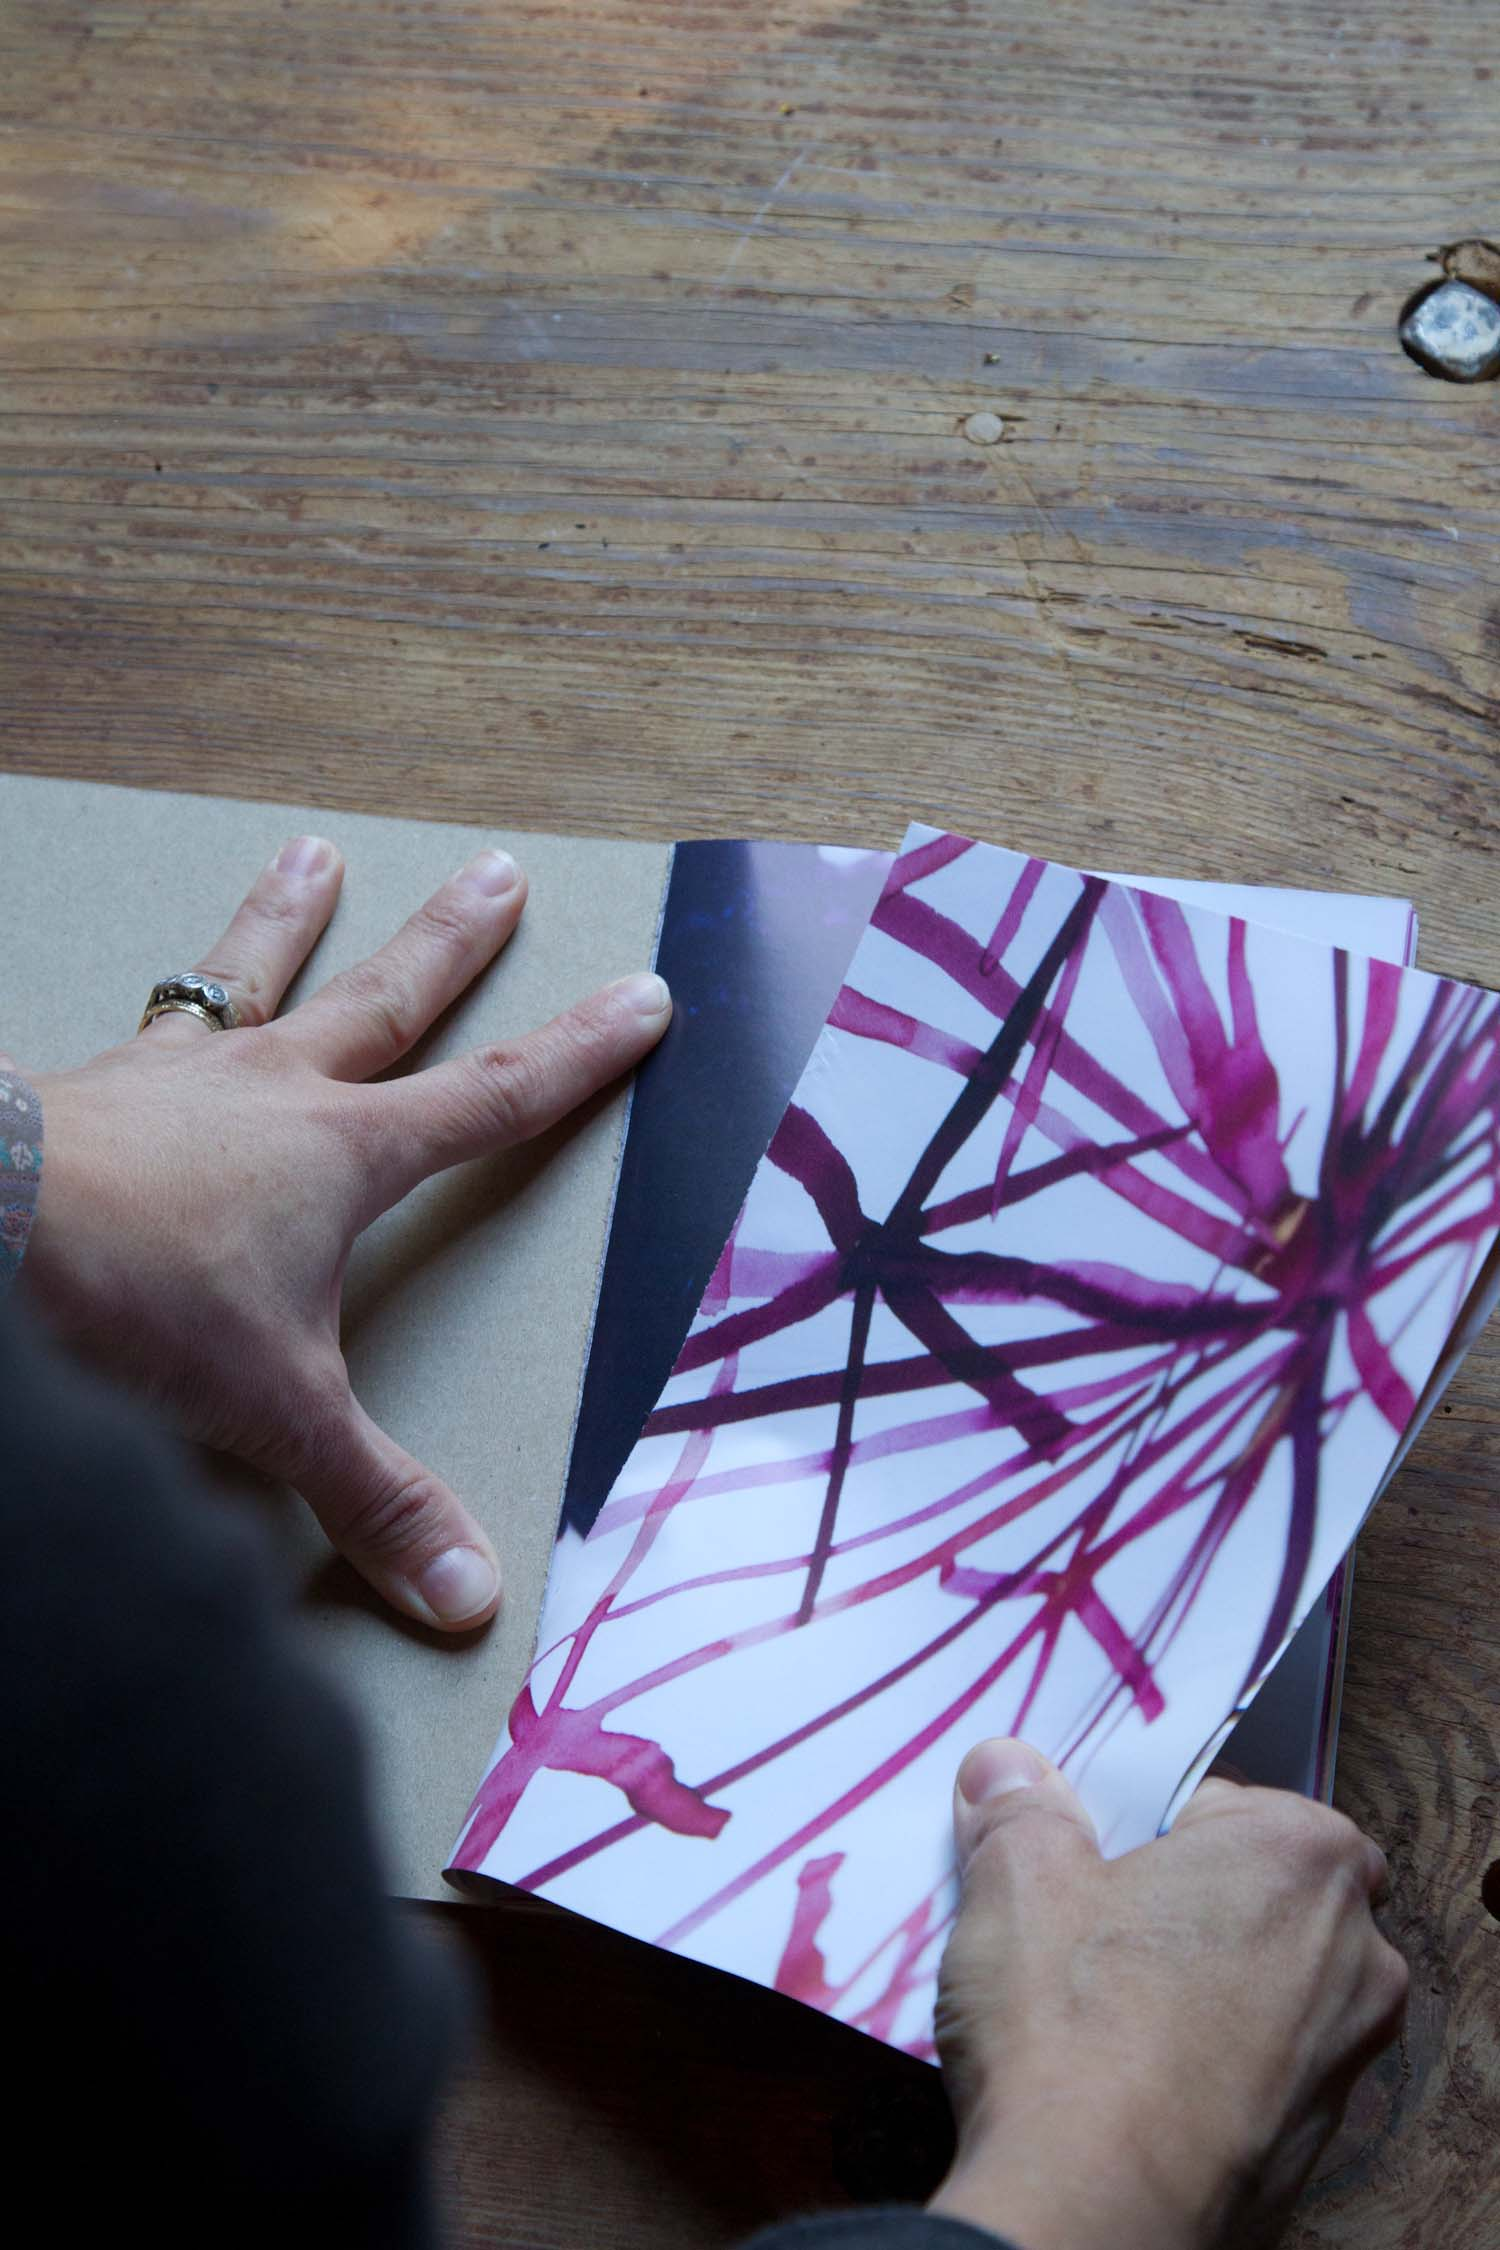 ...then, each diptych can be torn out of the book, due to its glue-bound construction....